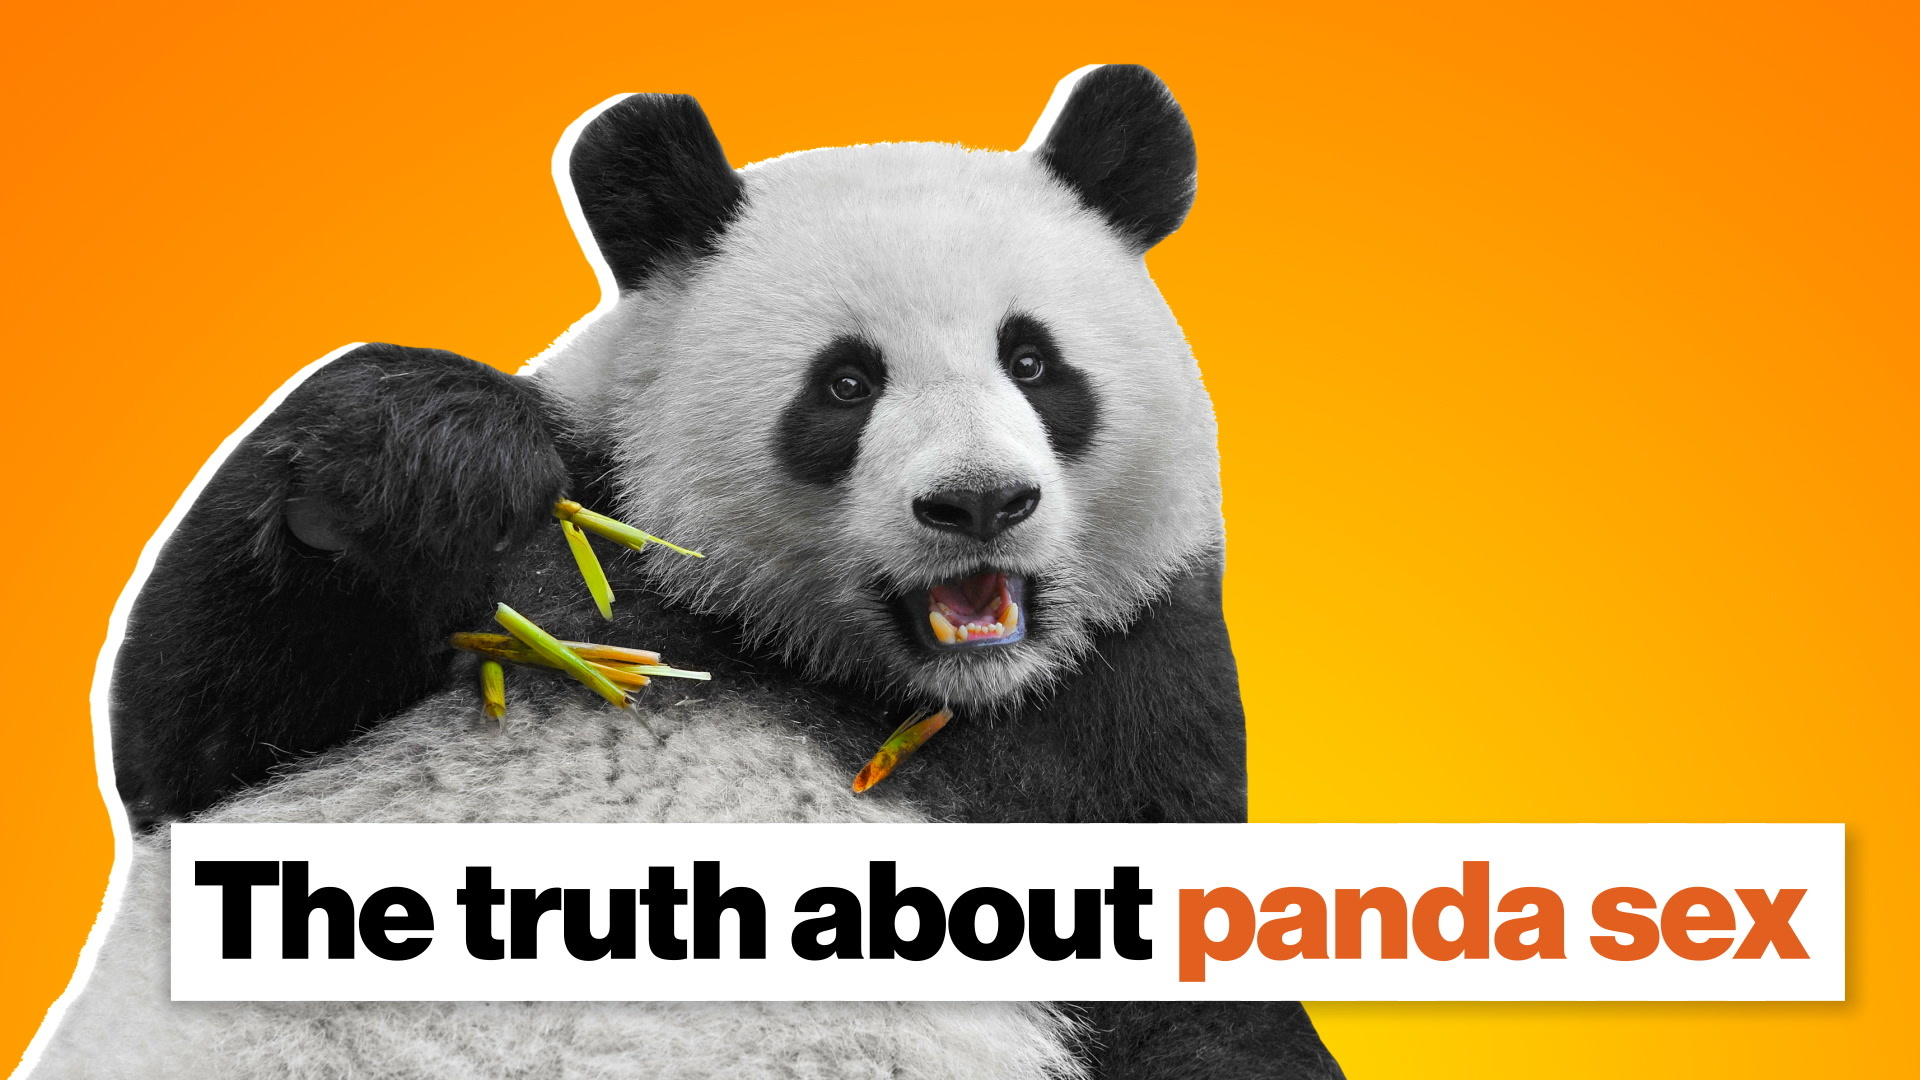 The truth about panda sex